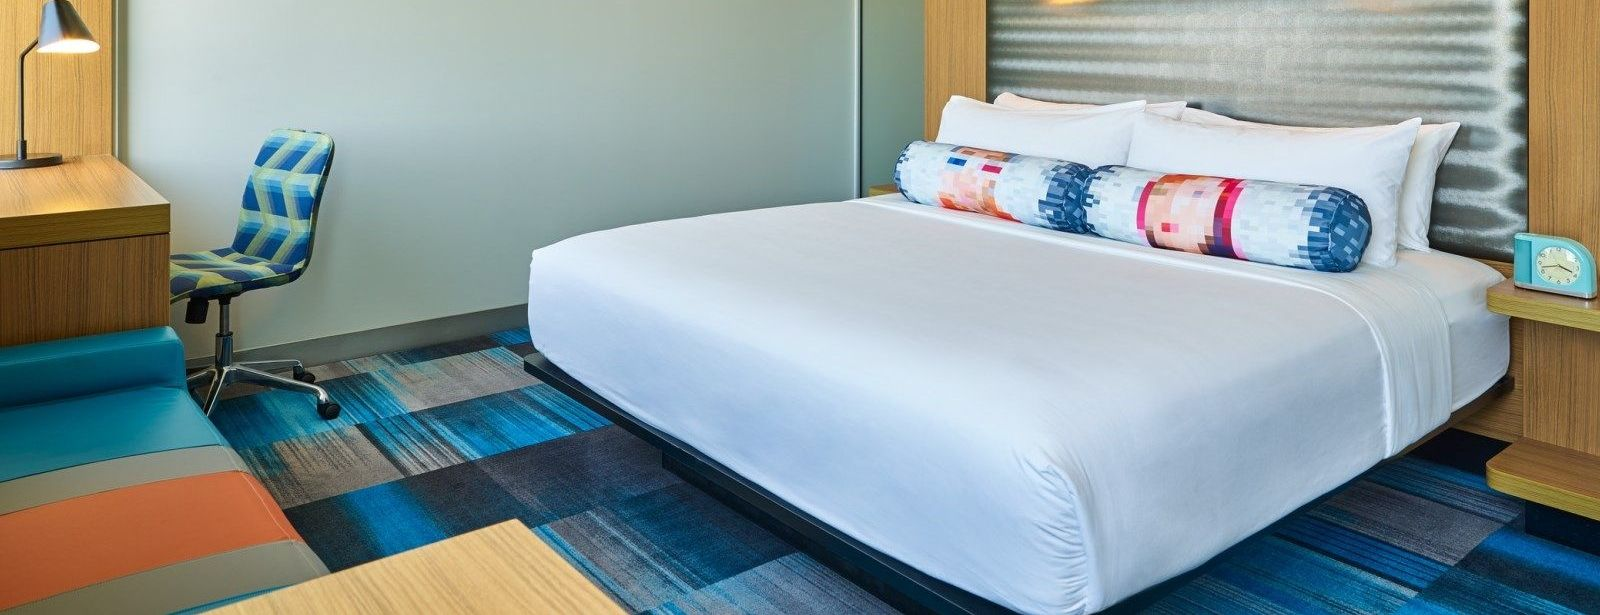 San Antonio Airport Accommodations - Accessible Guest Room